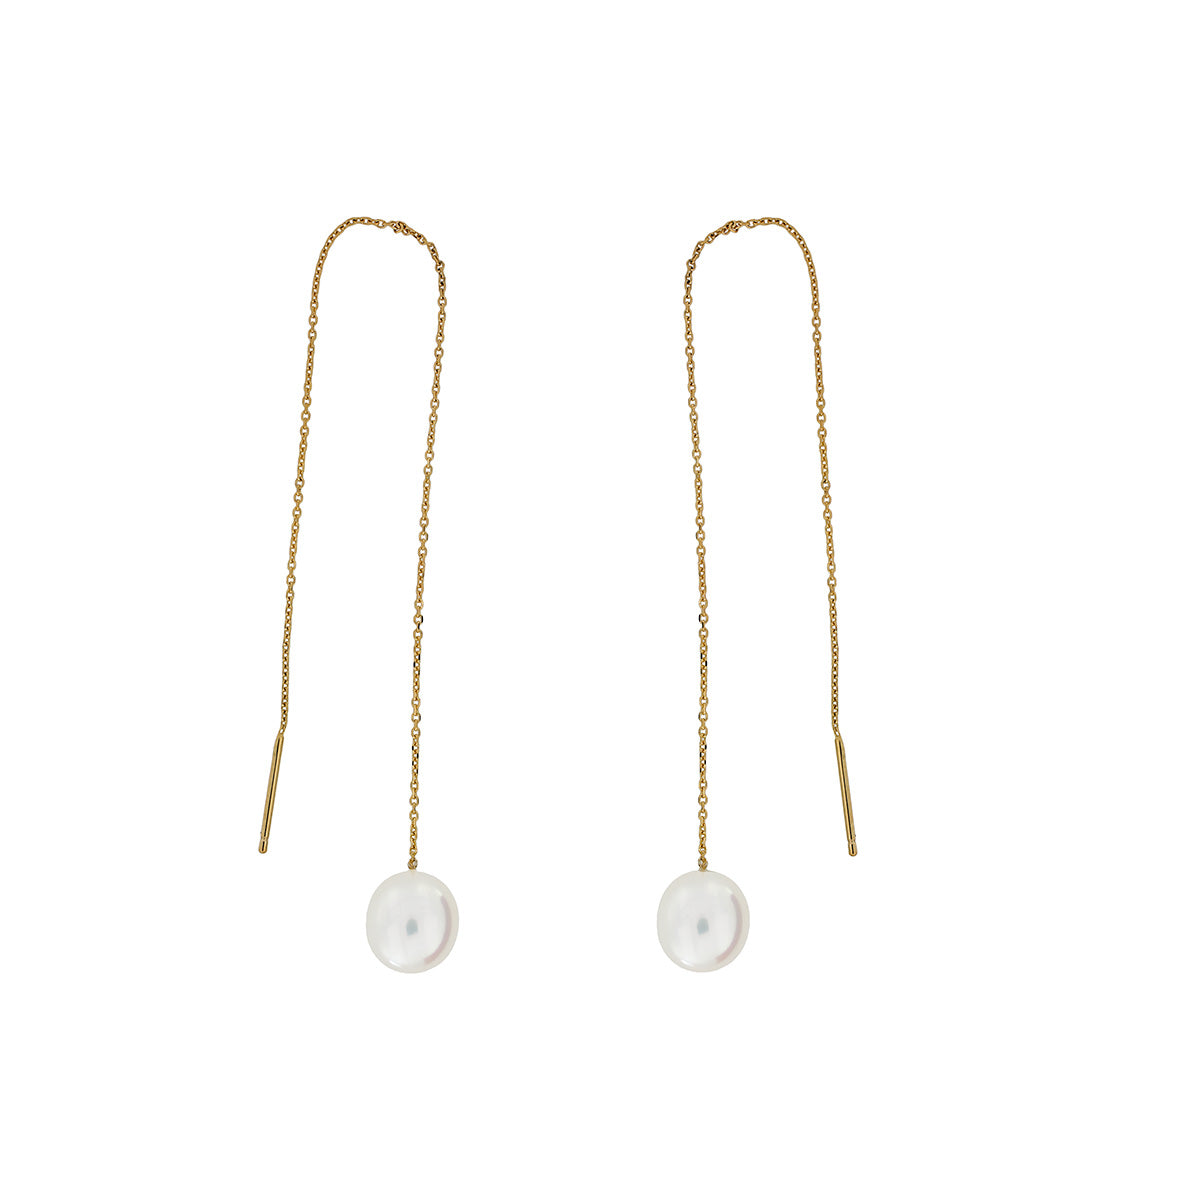 Yellow Gold Oval Pearl Pull-through Earrings